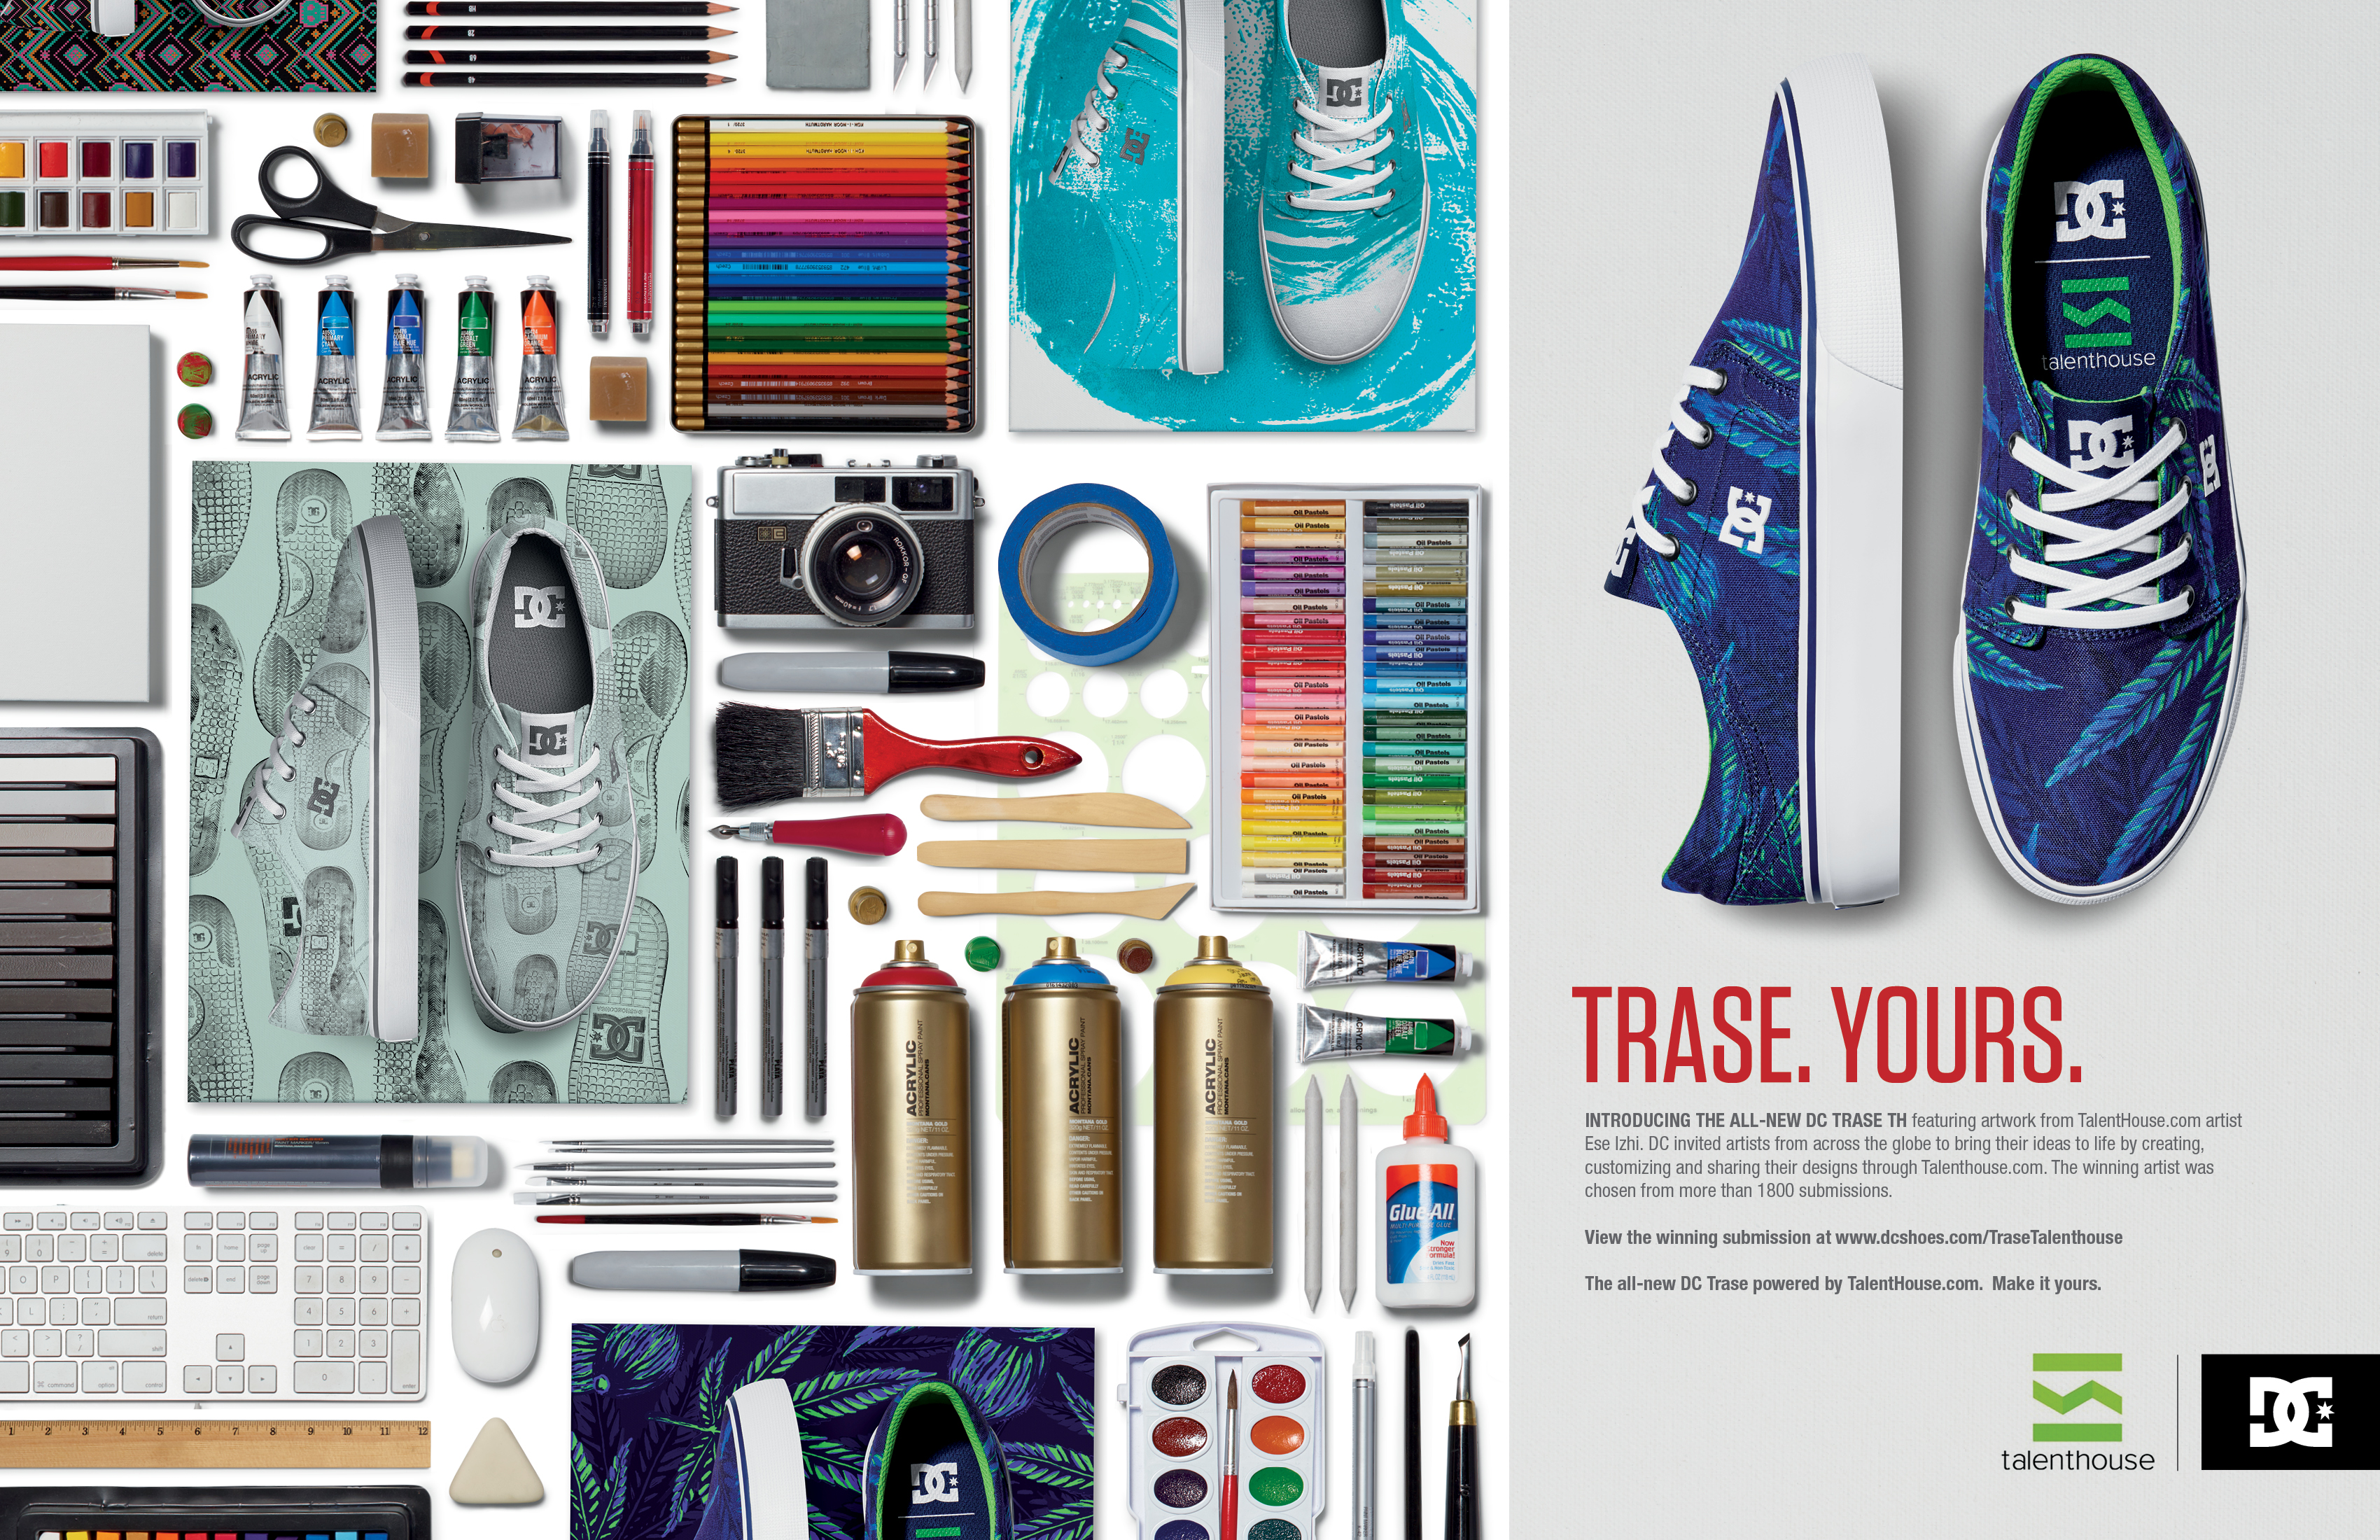 DC_15S2_TRASE_TALENTHOUSE_PRINT_SPREAD